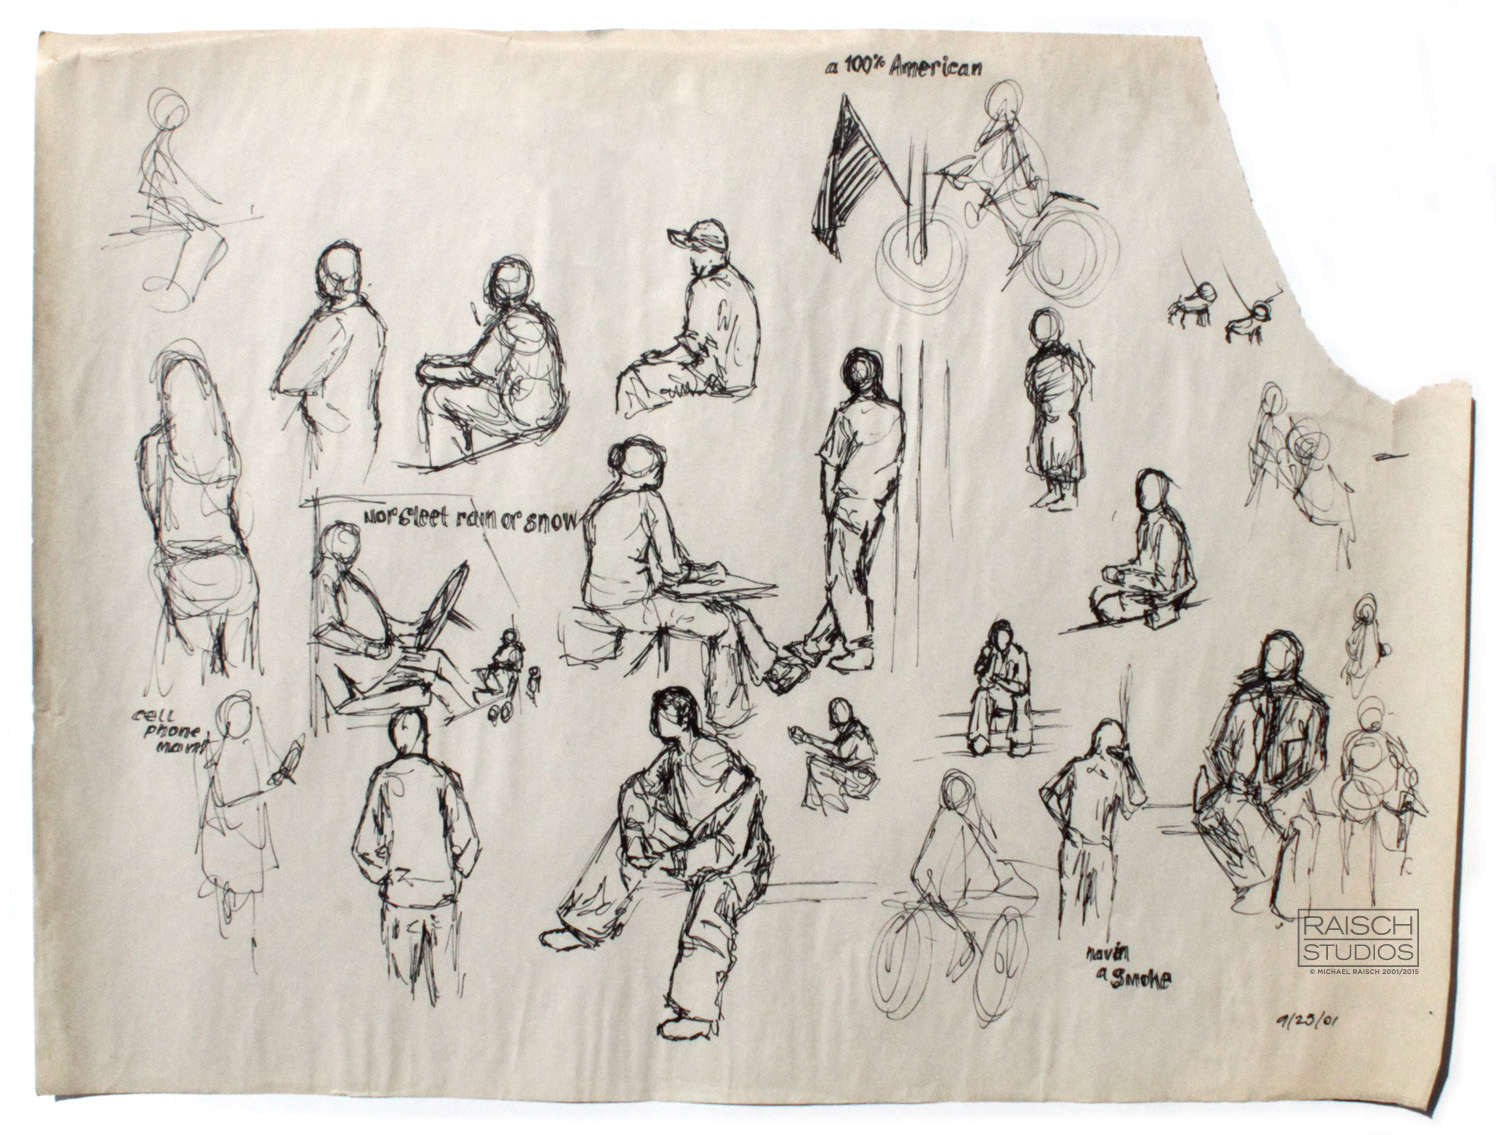 Figure and gesture drawings, class assignment - September 25, 2001